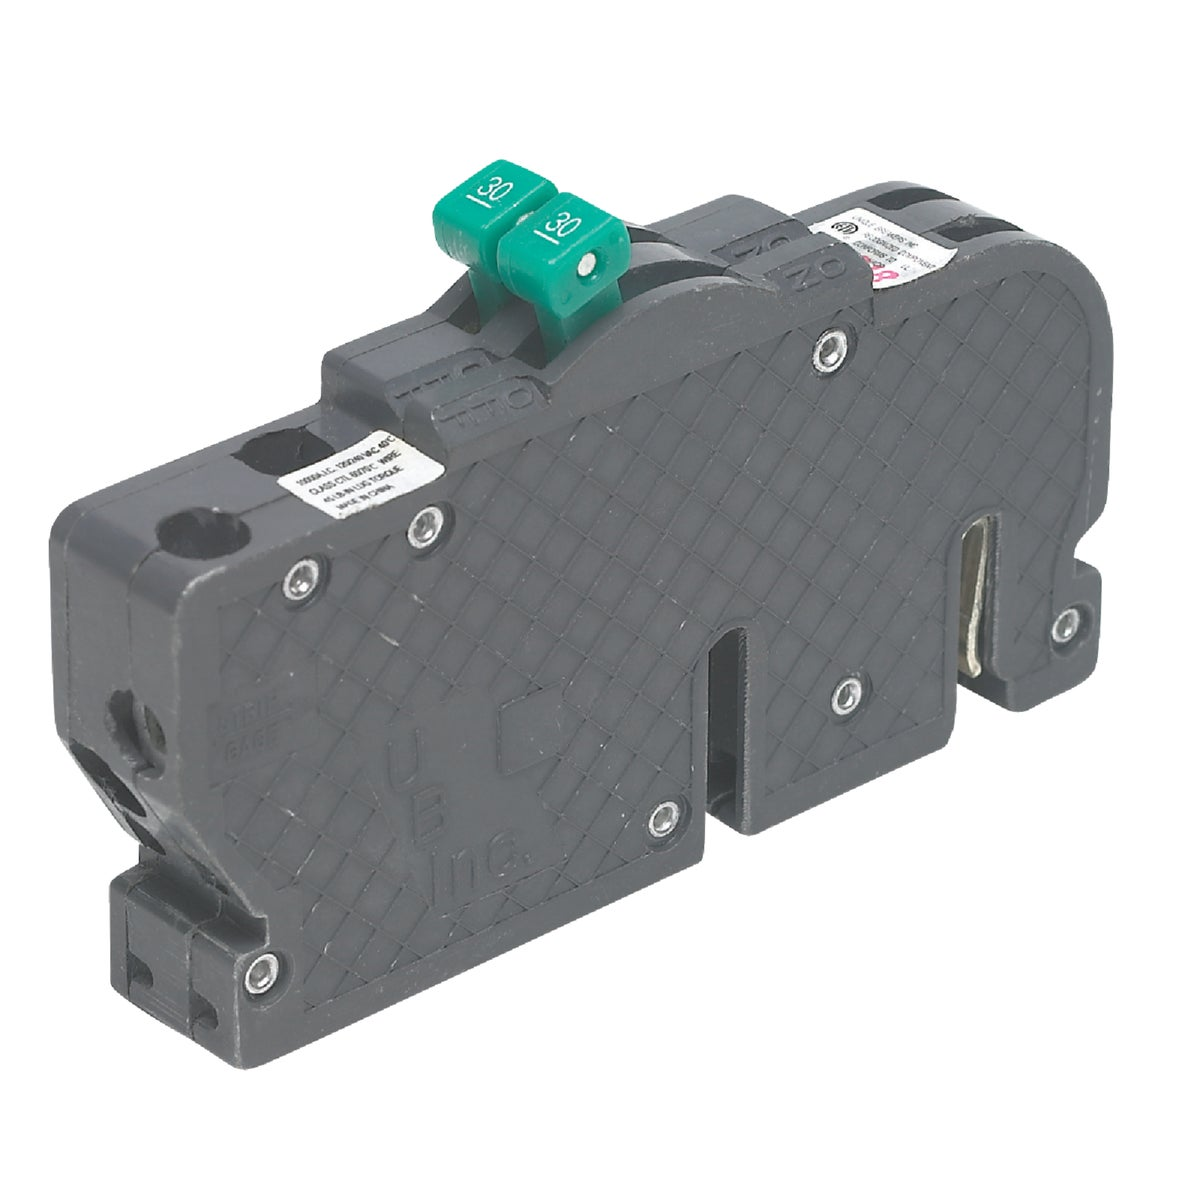 50A 2P CIRCUIT BREAKER - UBIZ0250 by Connecticut Electric